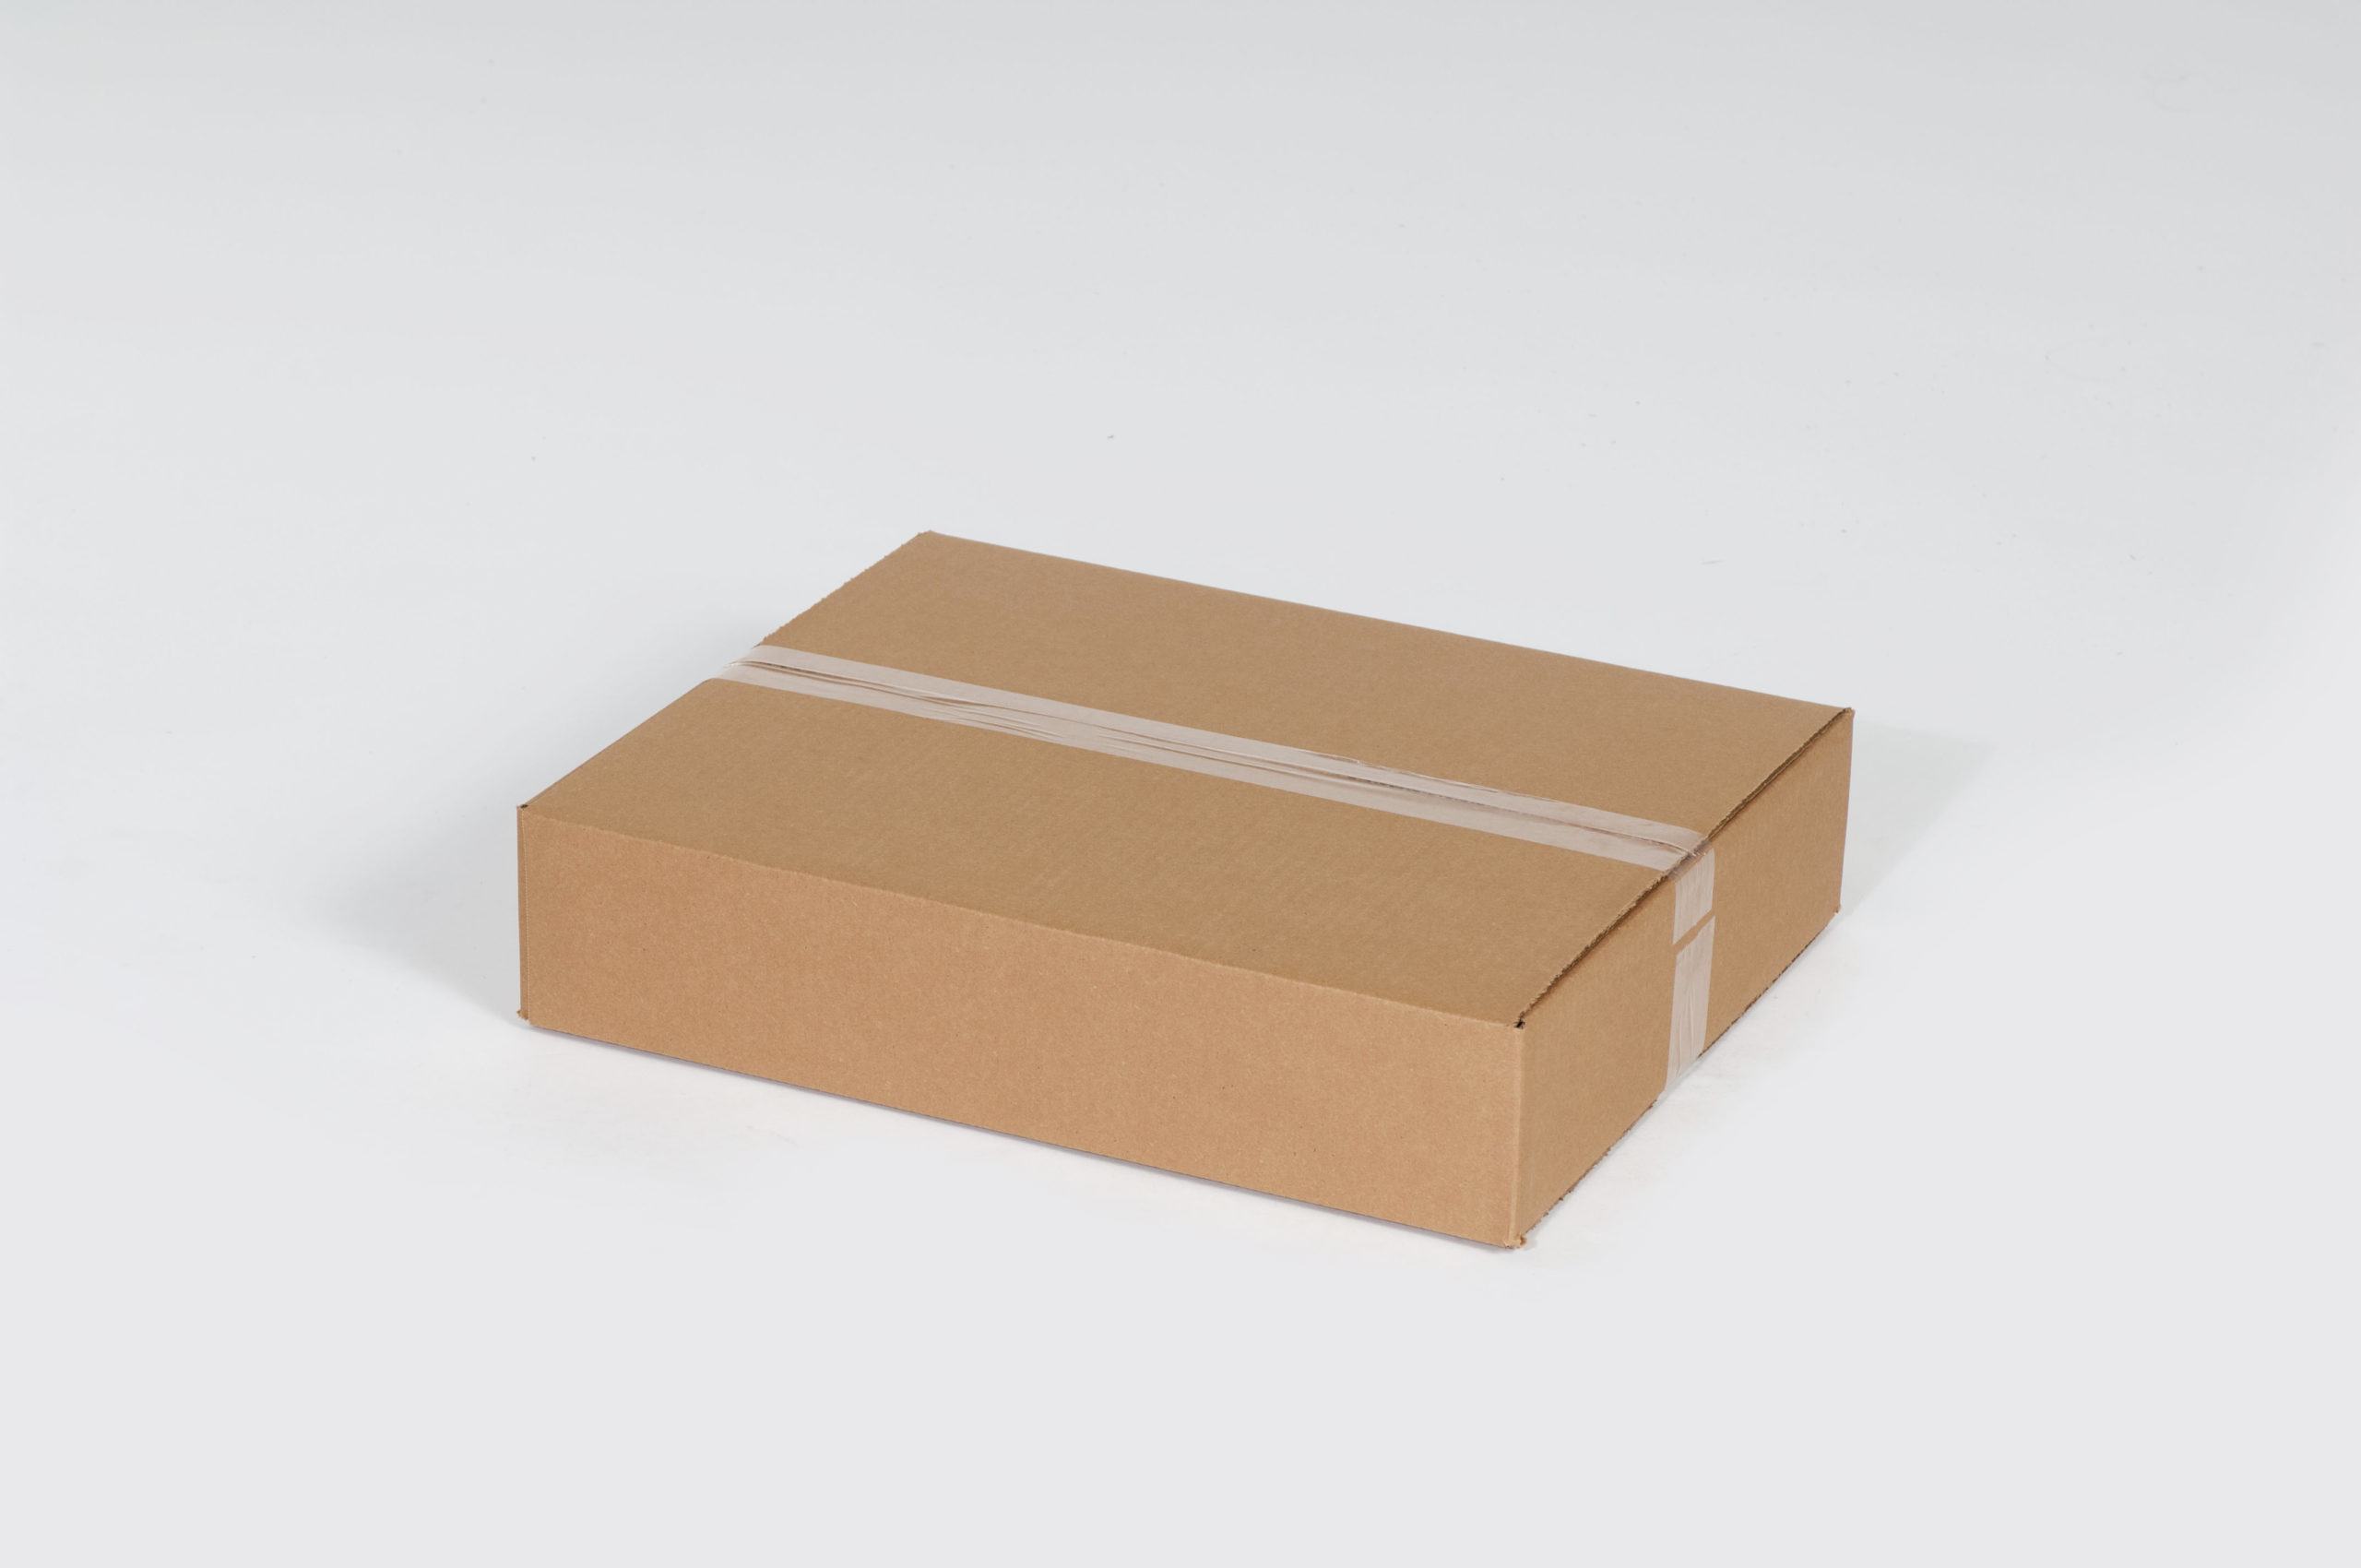 25-18 x 18 x 10-32 ECT New Corrugated Boxes